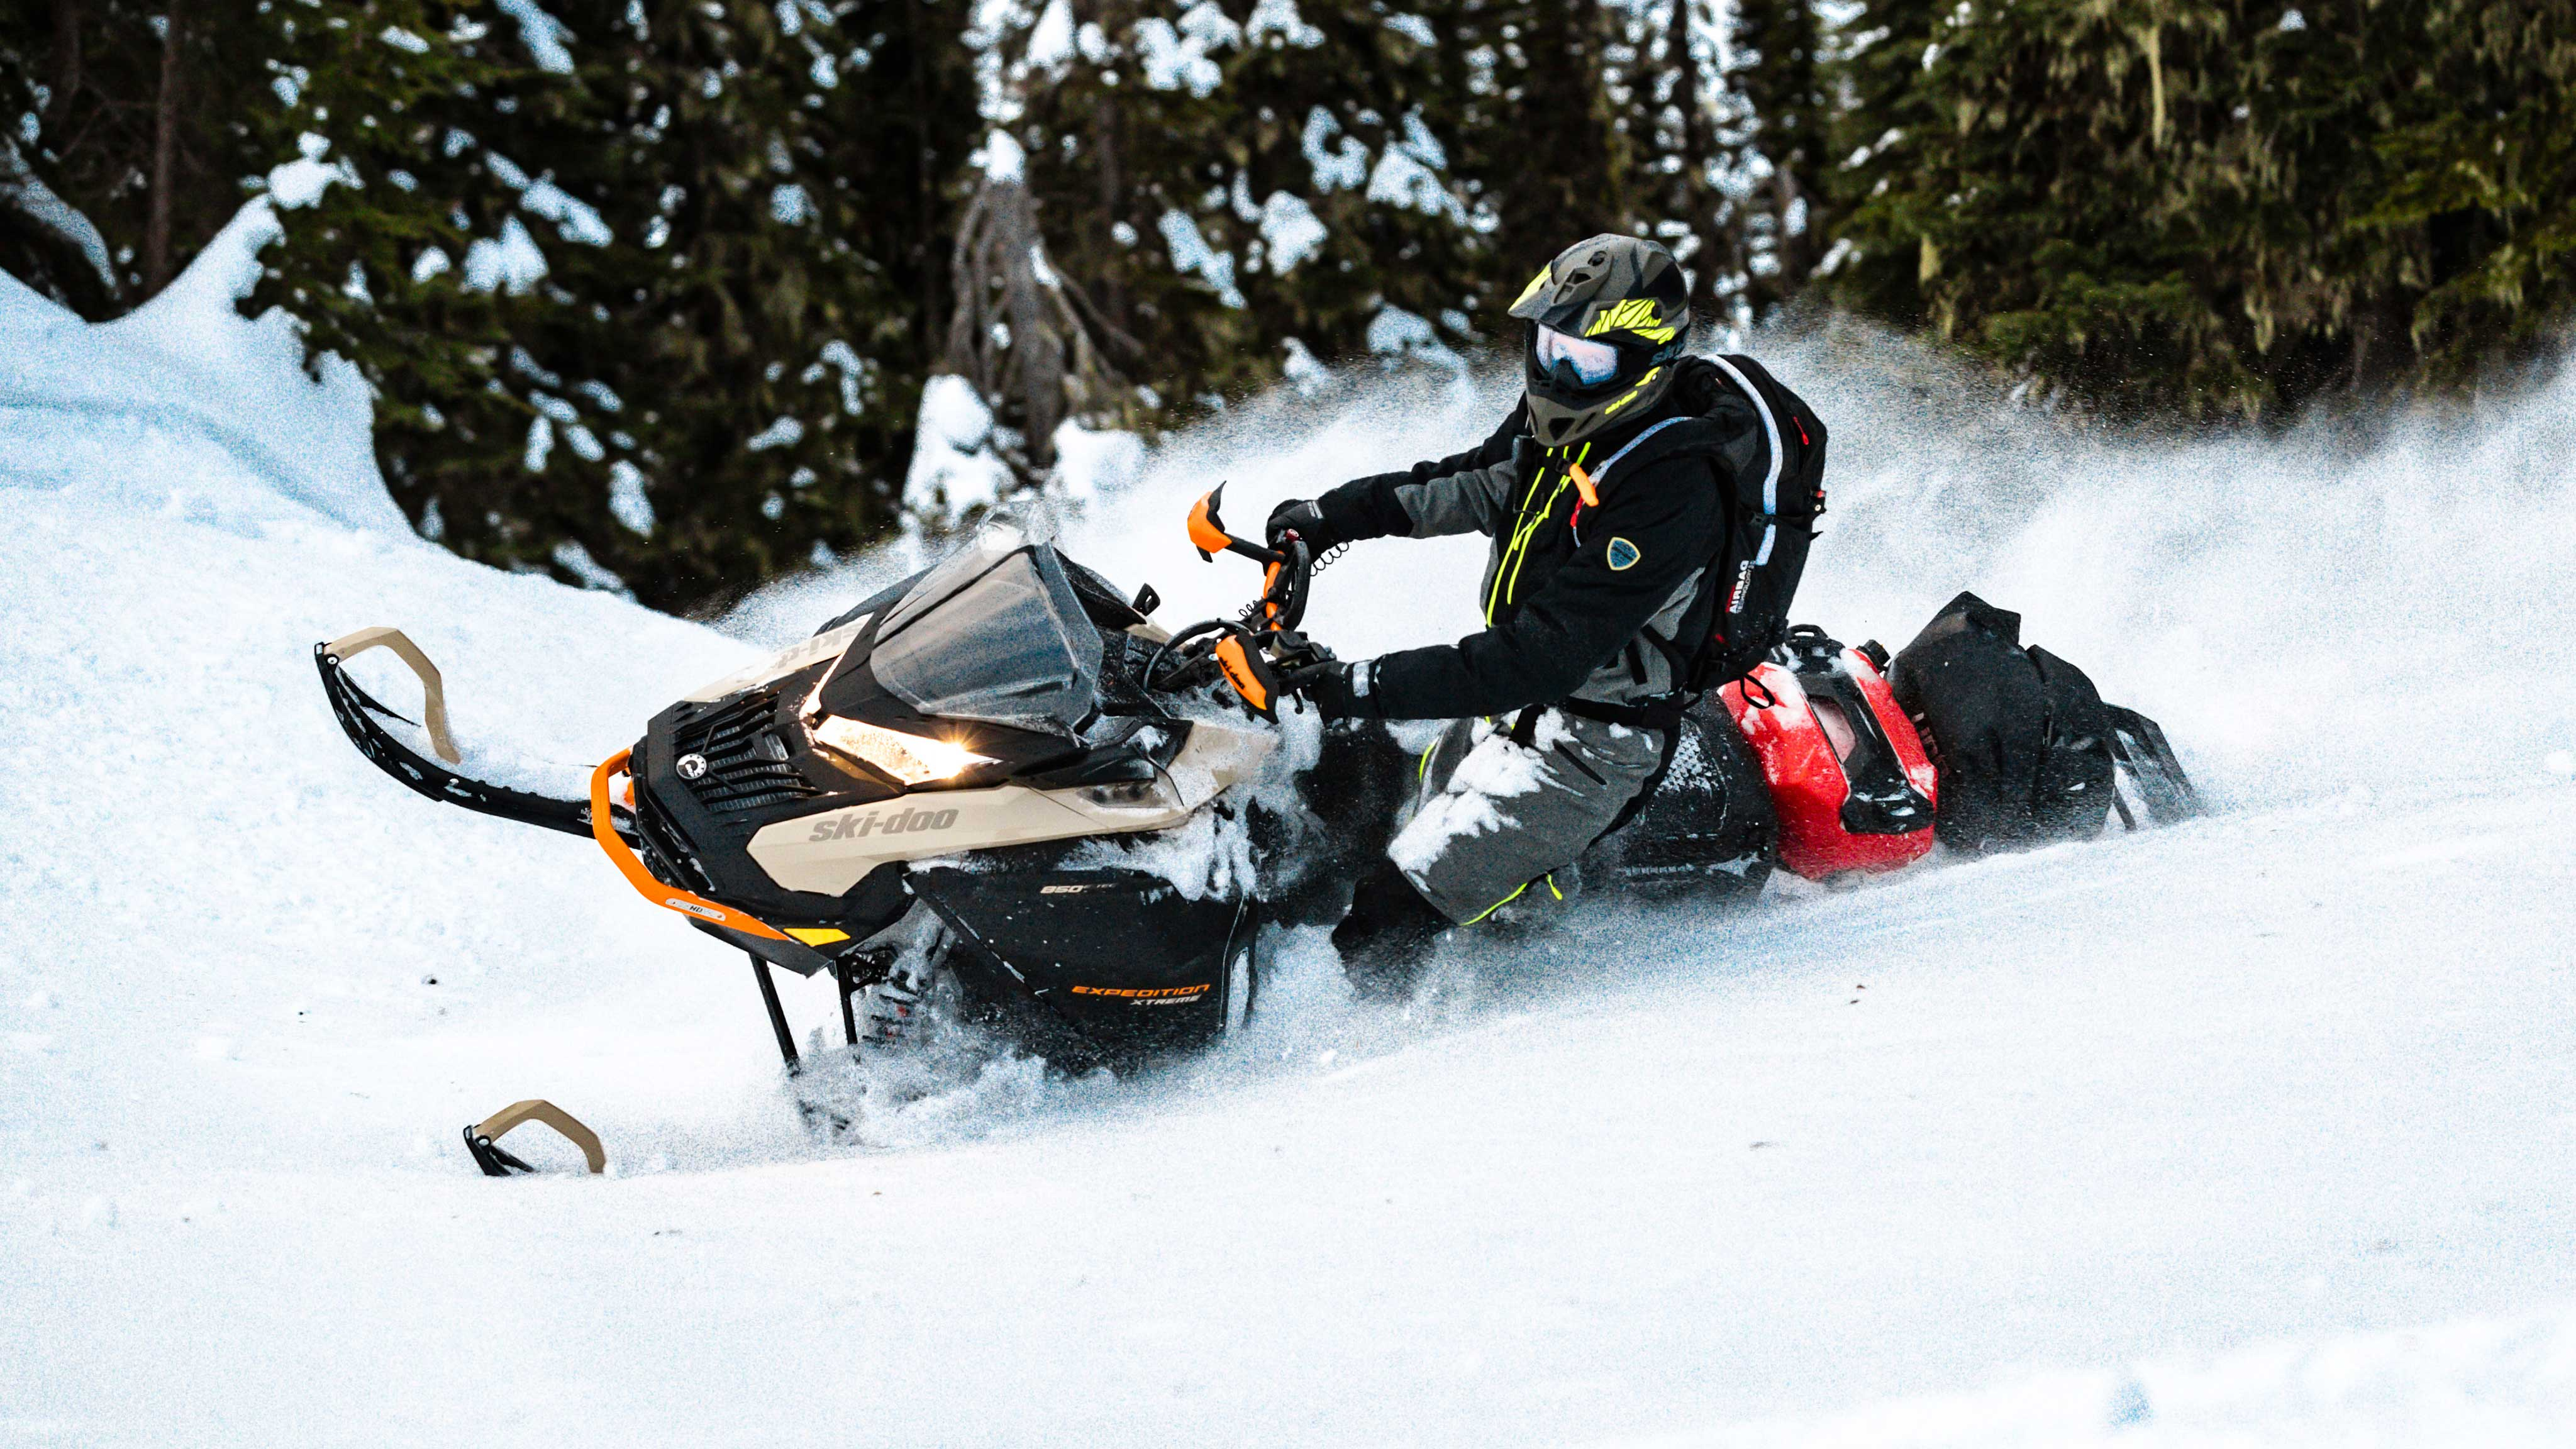 2022 Ski-Doo Expedition carving in deep-snow